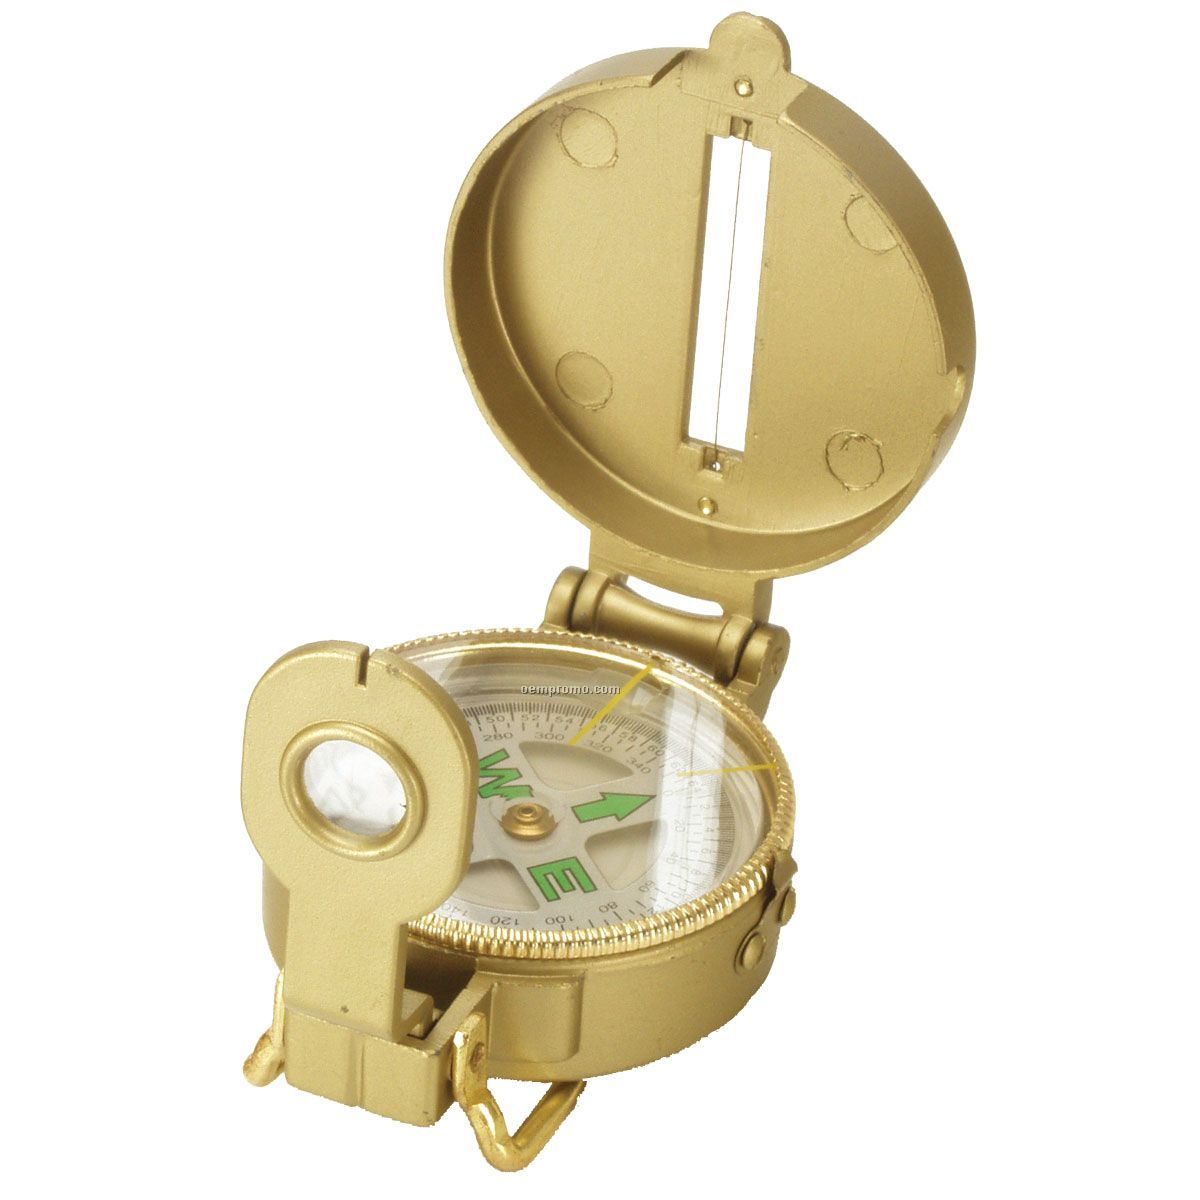 Gold Survival Compass W/ Magnifying Glass